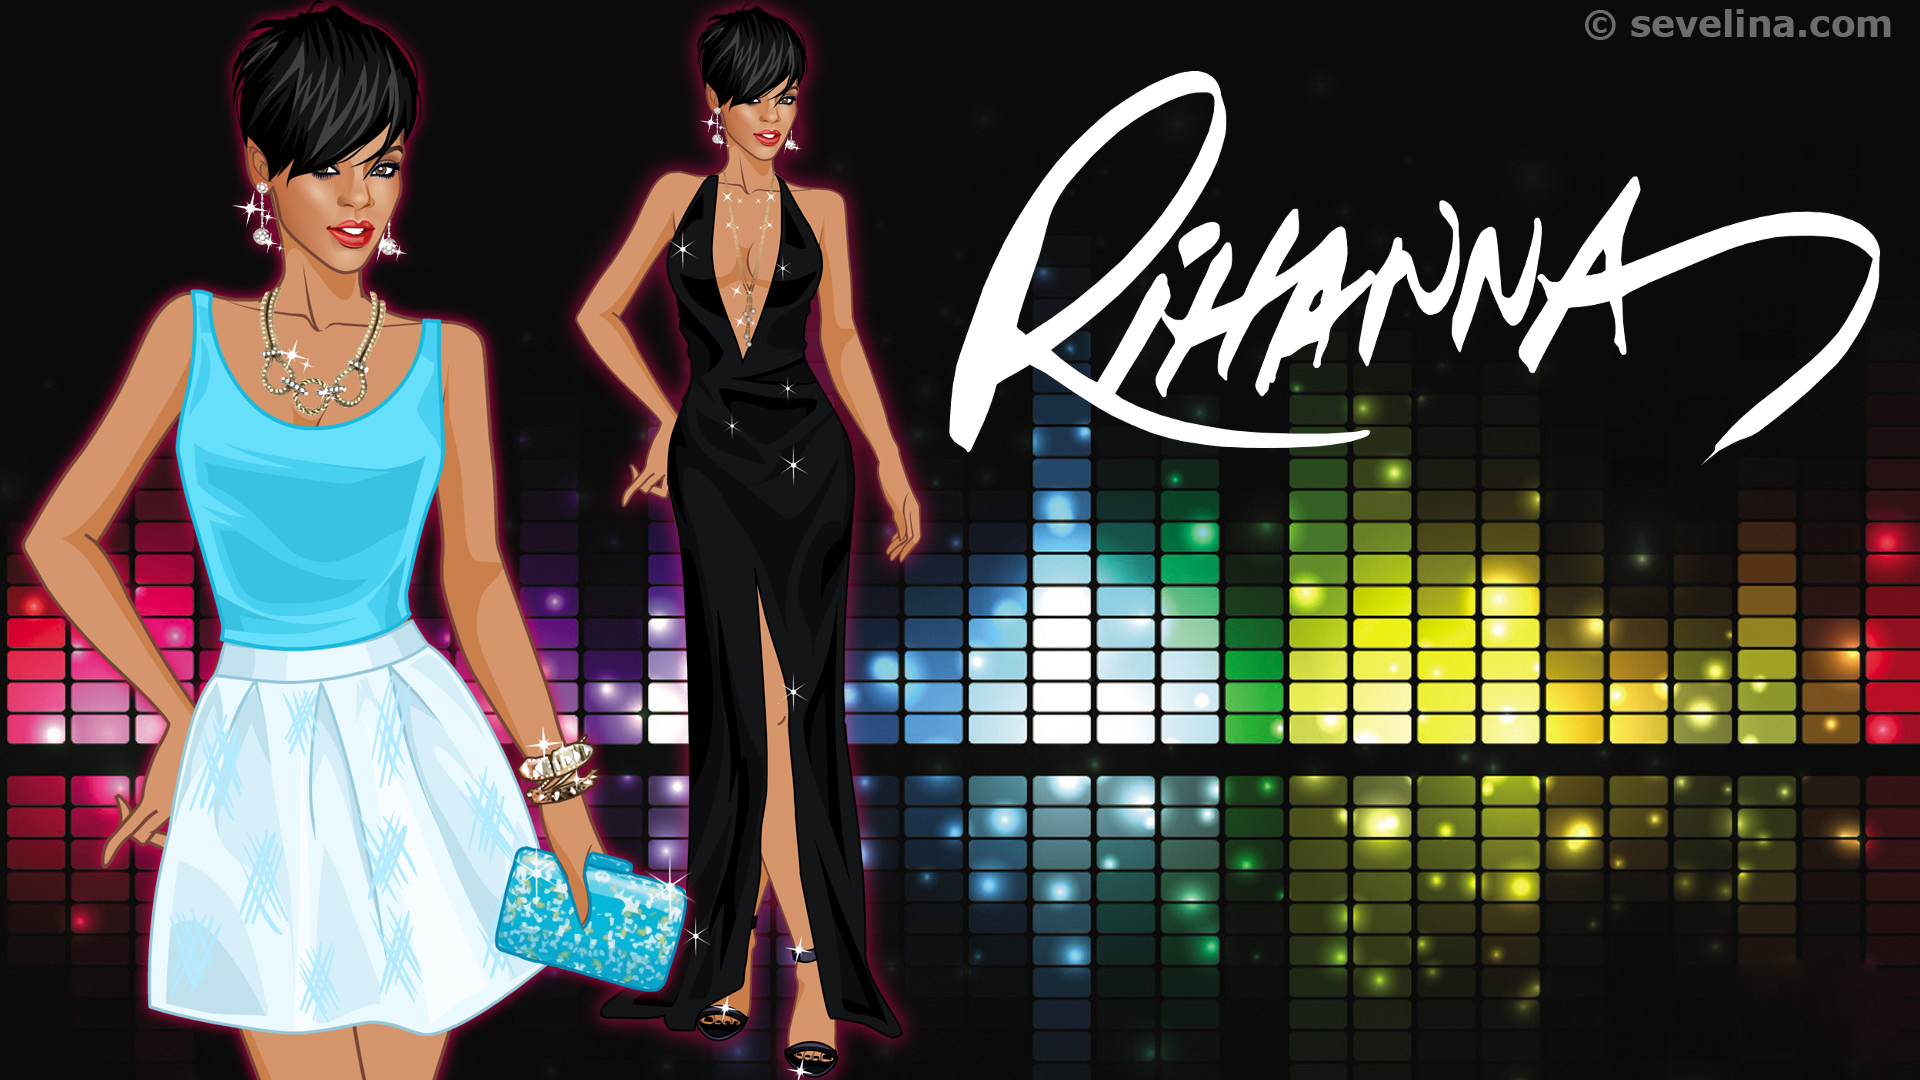 rihanna-wallpapers-2014-sevelina-dress-up-games-11